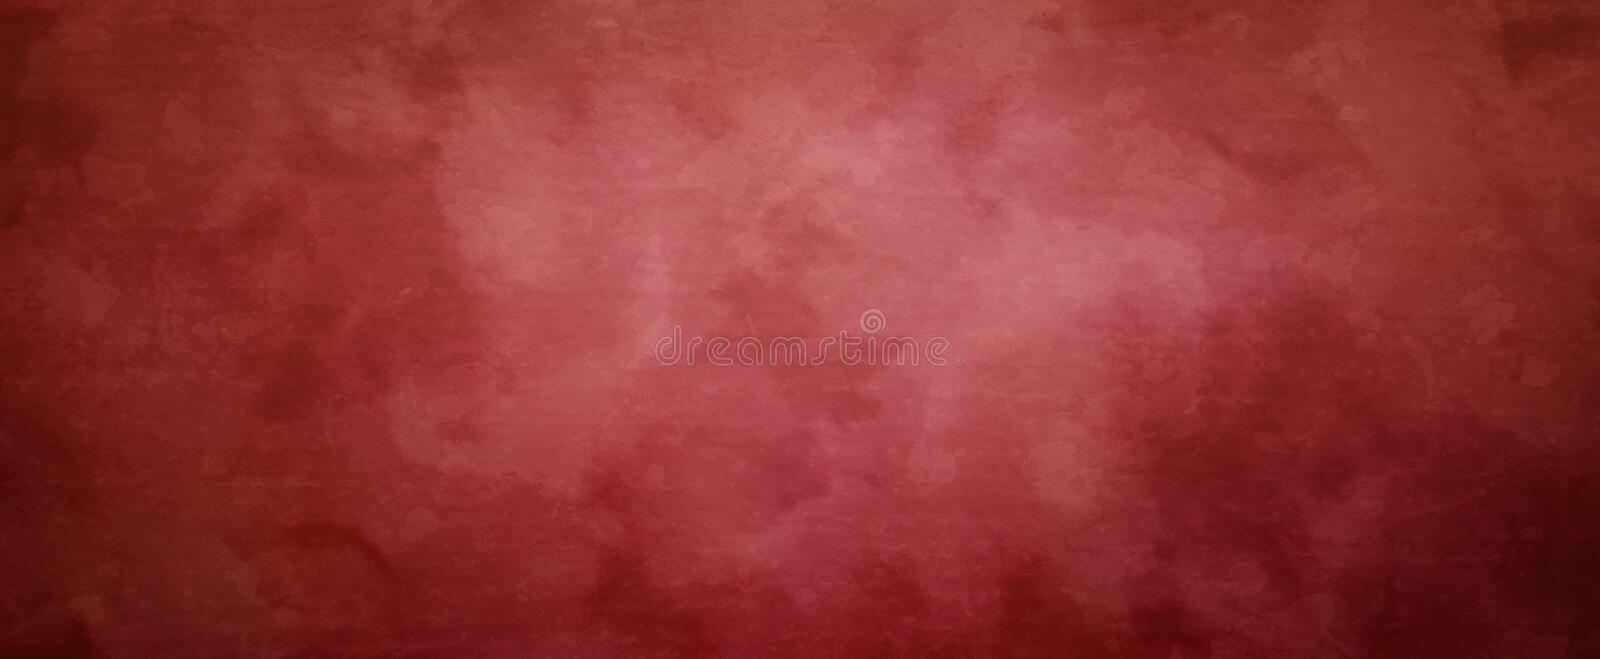 Old red Christmas background with vintage marbled grunge texture, solid blank elegant red banner layout royalty free illustration